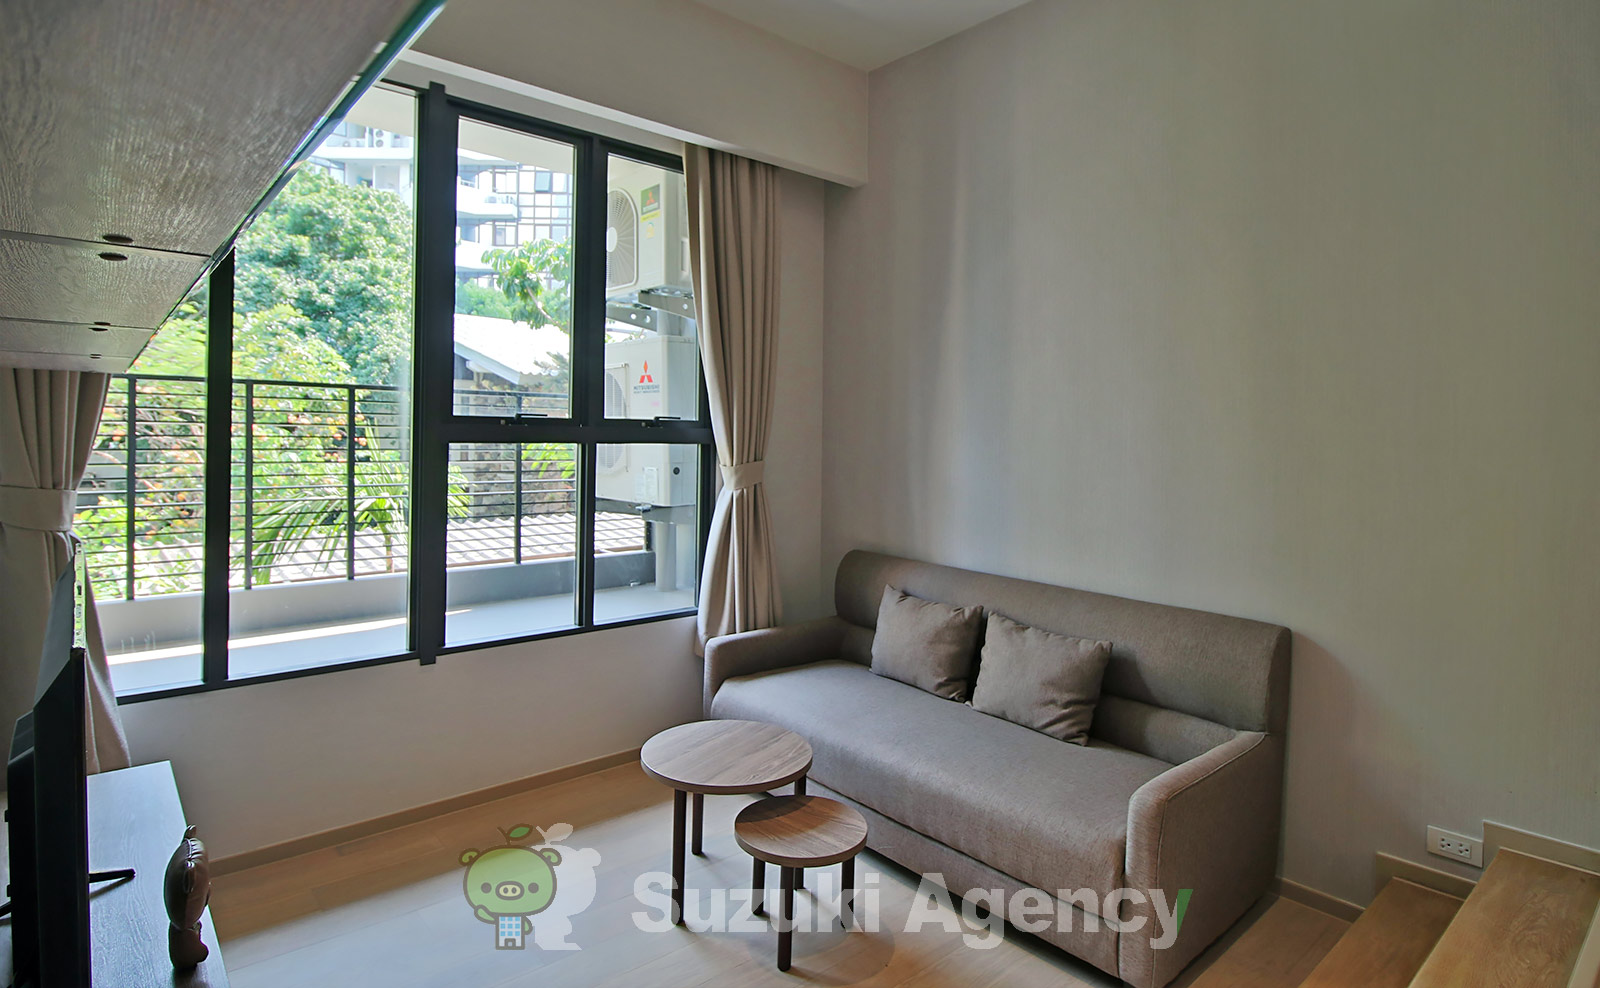 Runesu Thonglor 5:2Bed Room Photos No.2